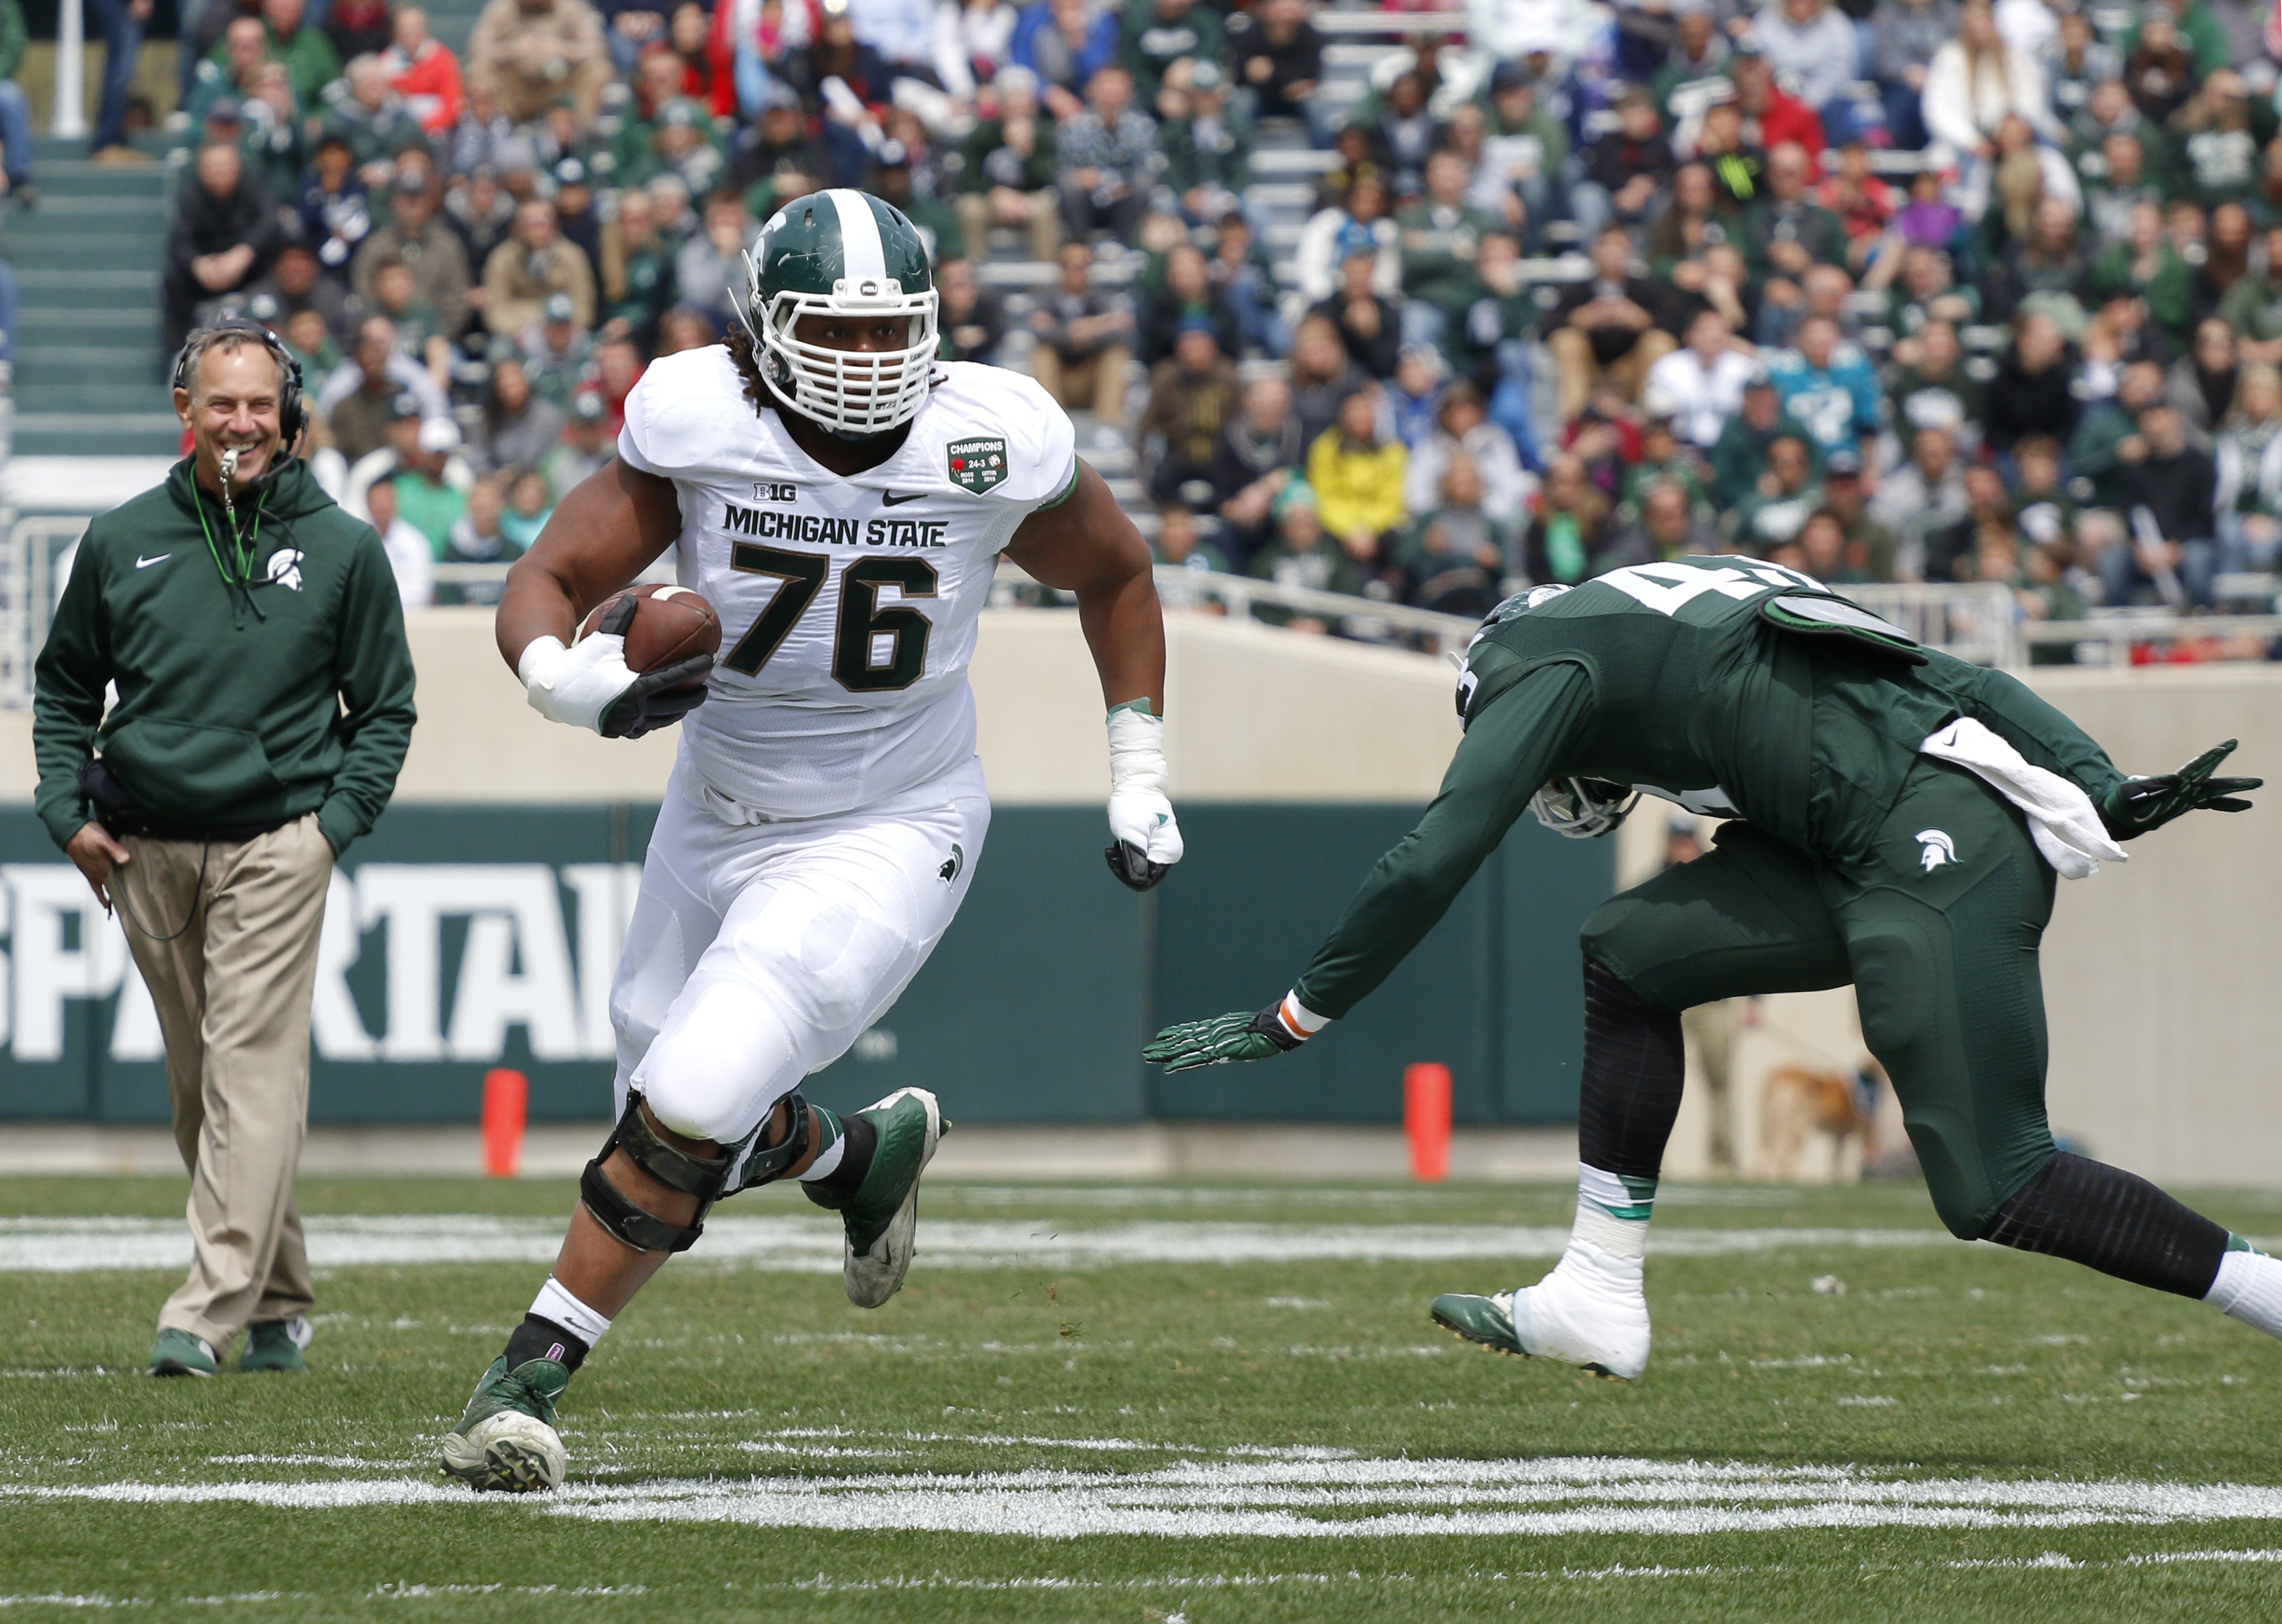 Michigan State White Team offensive lineman Donavan Clark (76) runs on a pass reception against the Green Team's Ed Davis, right, as head coach Mark Dantonio, left, watches during the Spartans' spring NCAA college football game, Saturday, April 25, 2015,